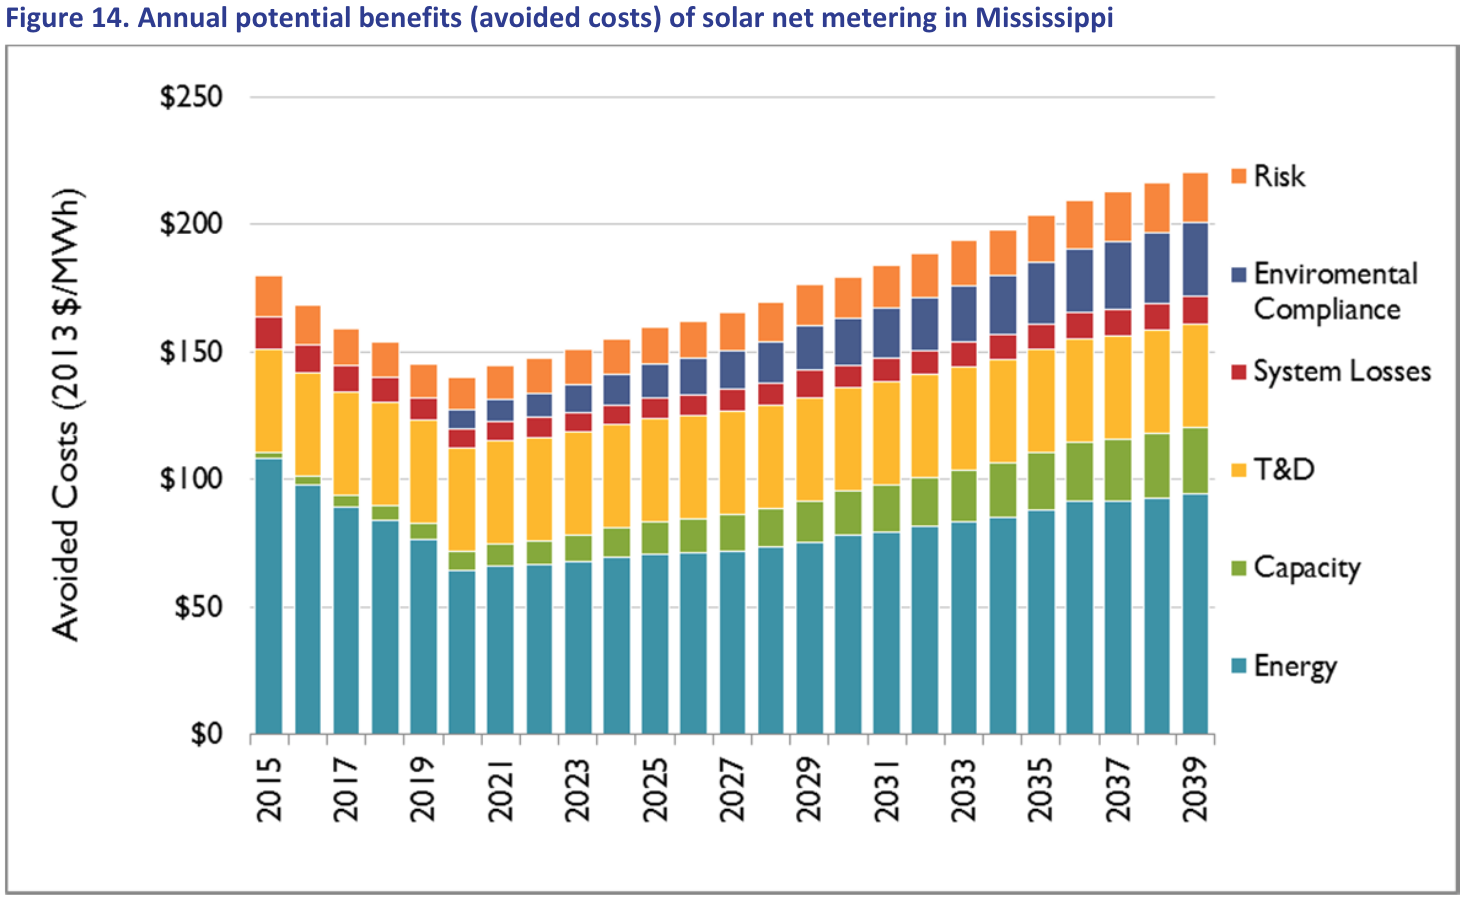 Net_Metering_annual_potential_benefits.png